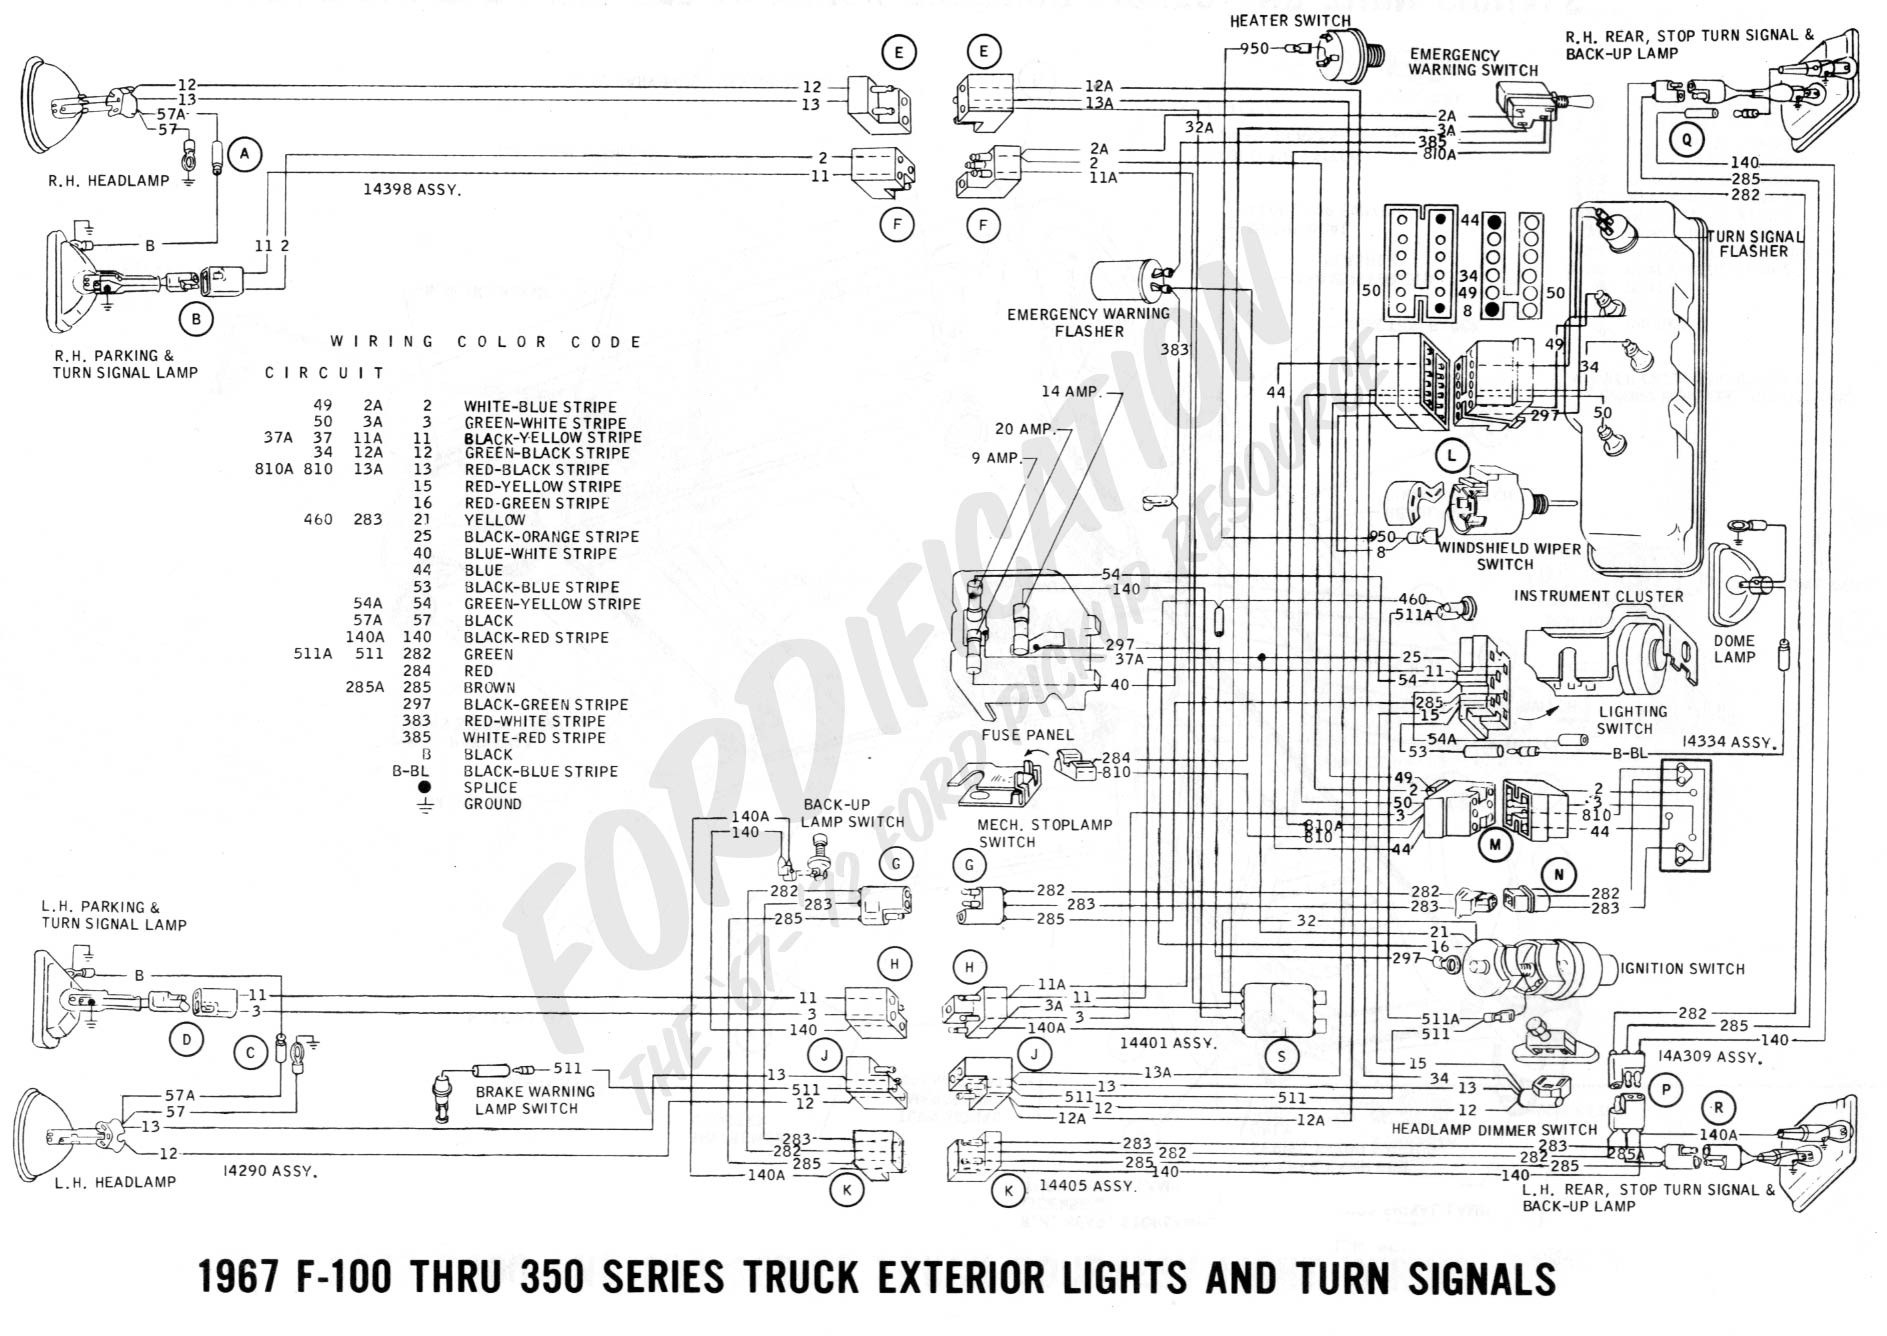 1967 Thunderbird Turn Signal Diagram Wiring Schematic Wiring Diagram View A View A Zaafran It